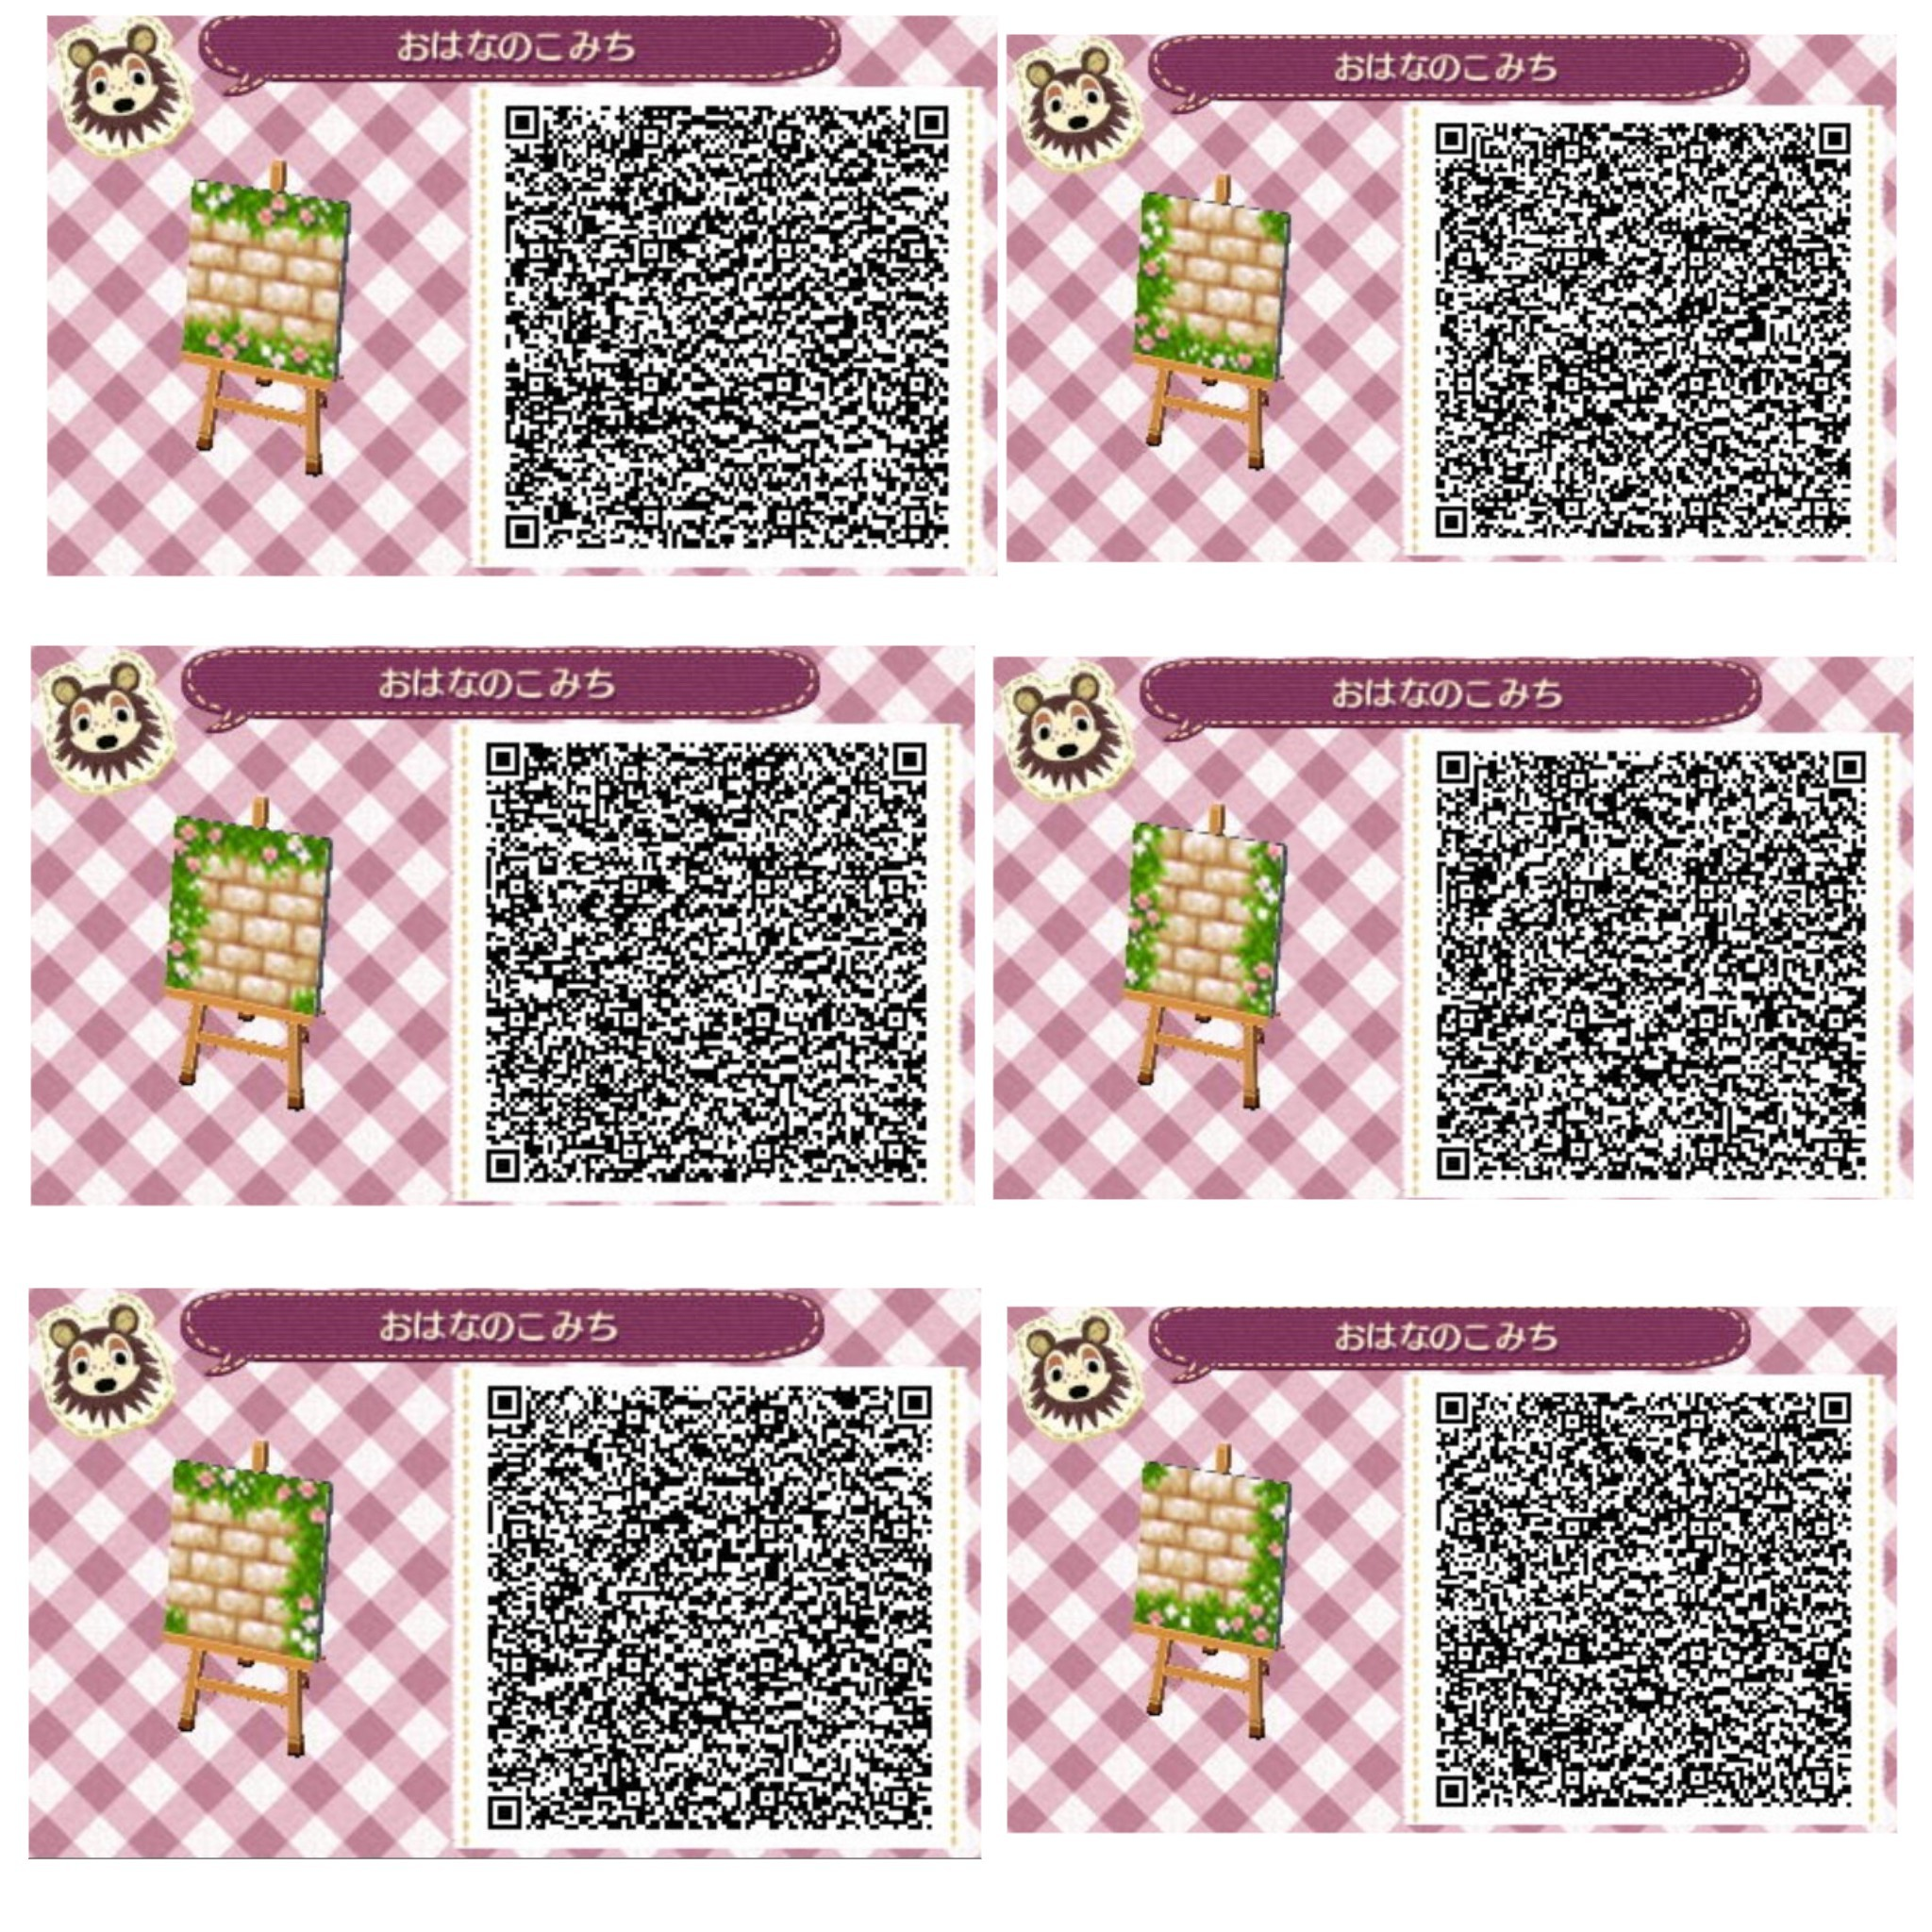 Res: 2048x2048, Animal Crossing New Leaf Matching Wallpaper Flooring